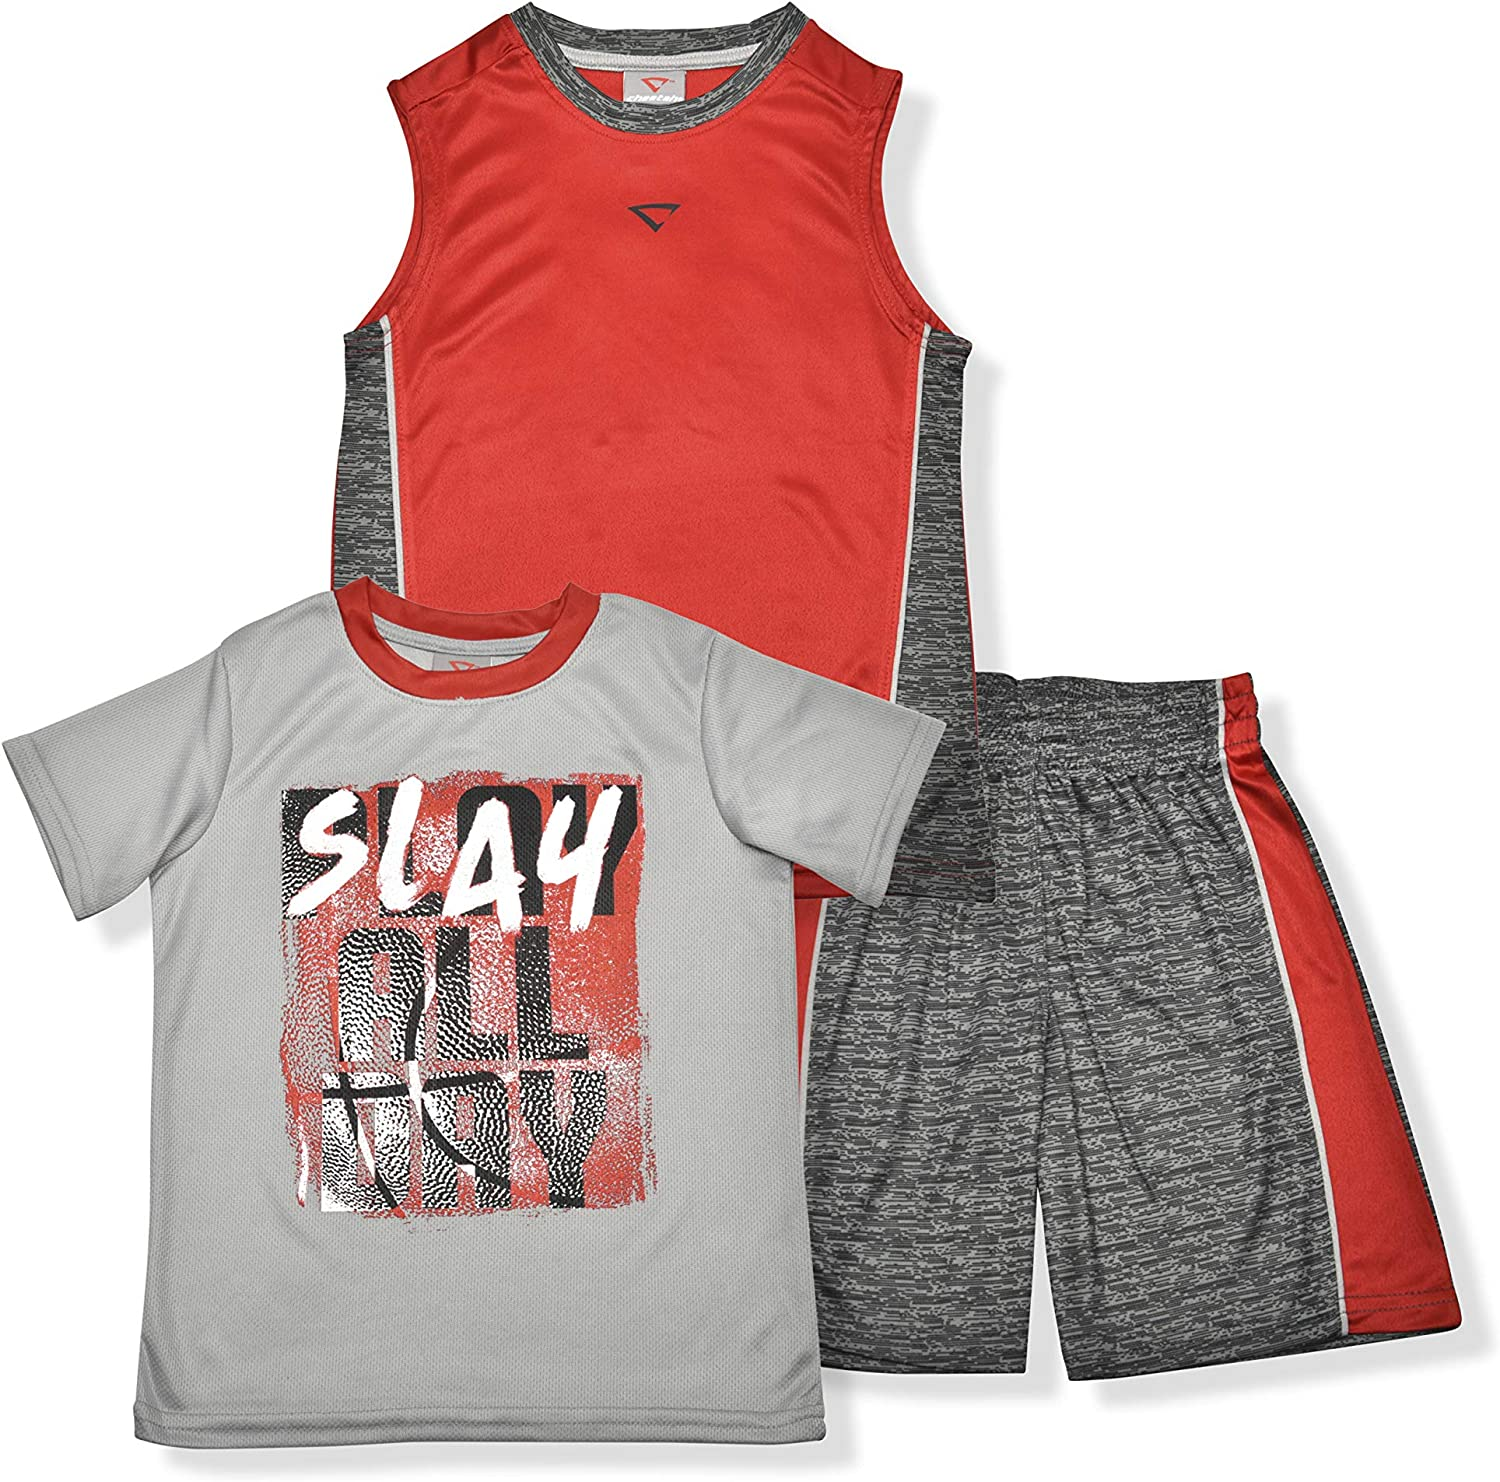 T-Shirt and Muscle Shirt Cheetah Boys 3 Piece Athletic Gym Set with Shorts